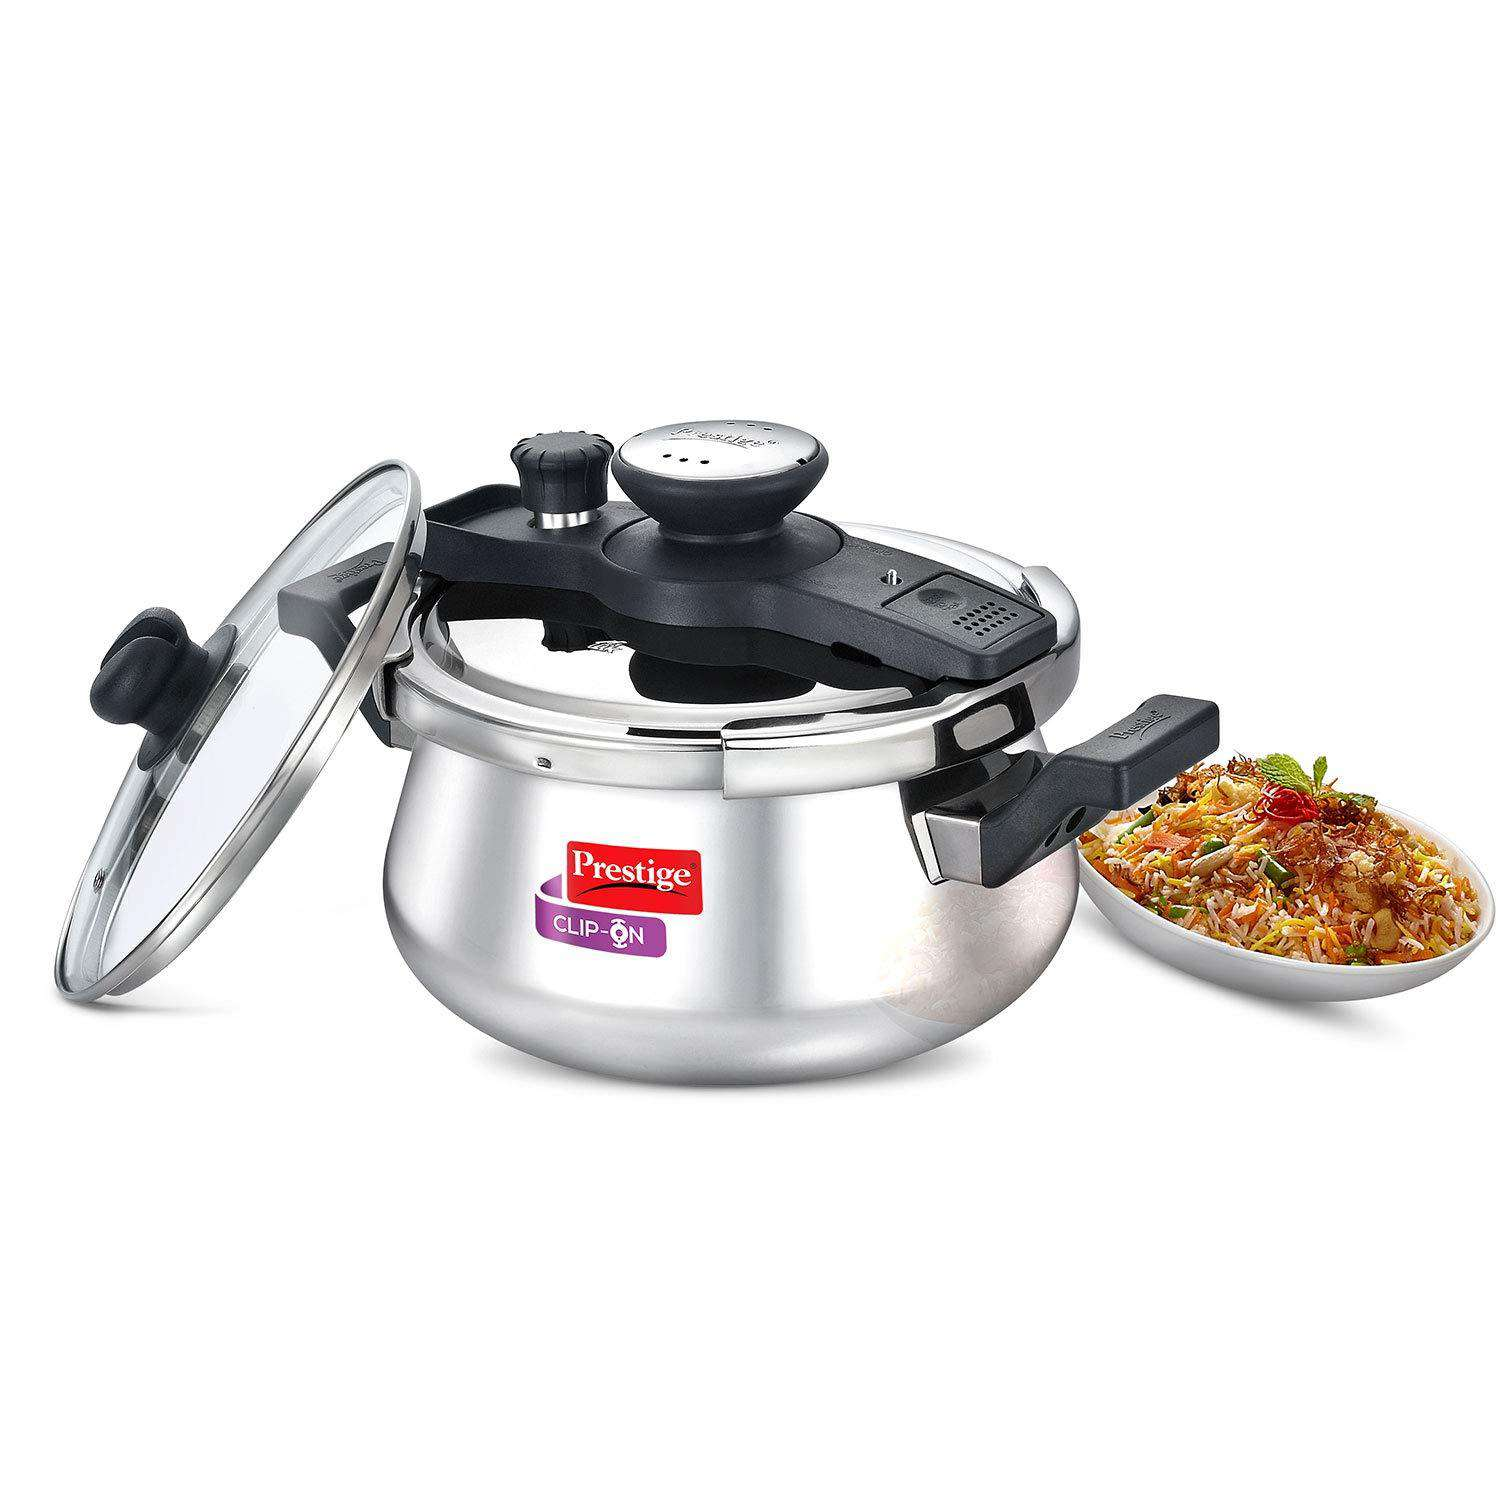 Prestige Clip On Stainless Steel Handi Pressure Cooker with Glass Lid, 5 Litres